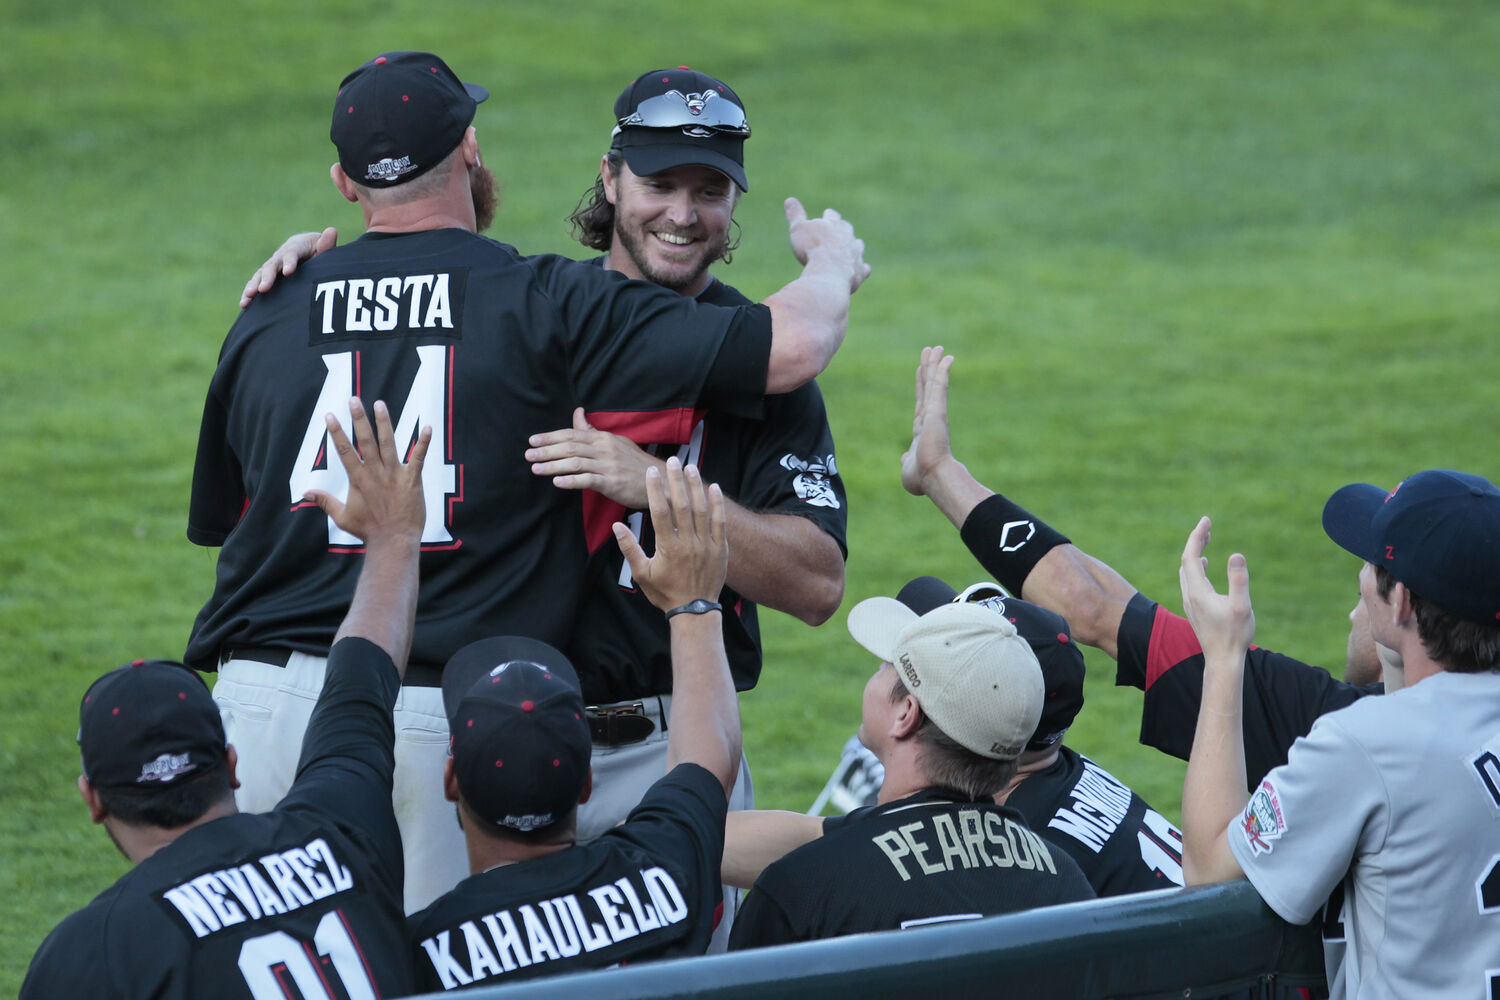 Carlo Testa of the Wichita Wingnuts is congratulated by his team for winning the title of Fastest Baserunner at the All-Star Skills Competition in Winnipeg Monday.